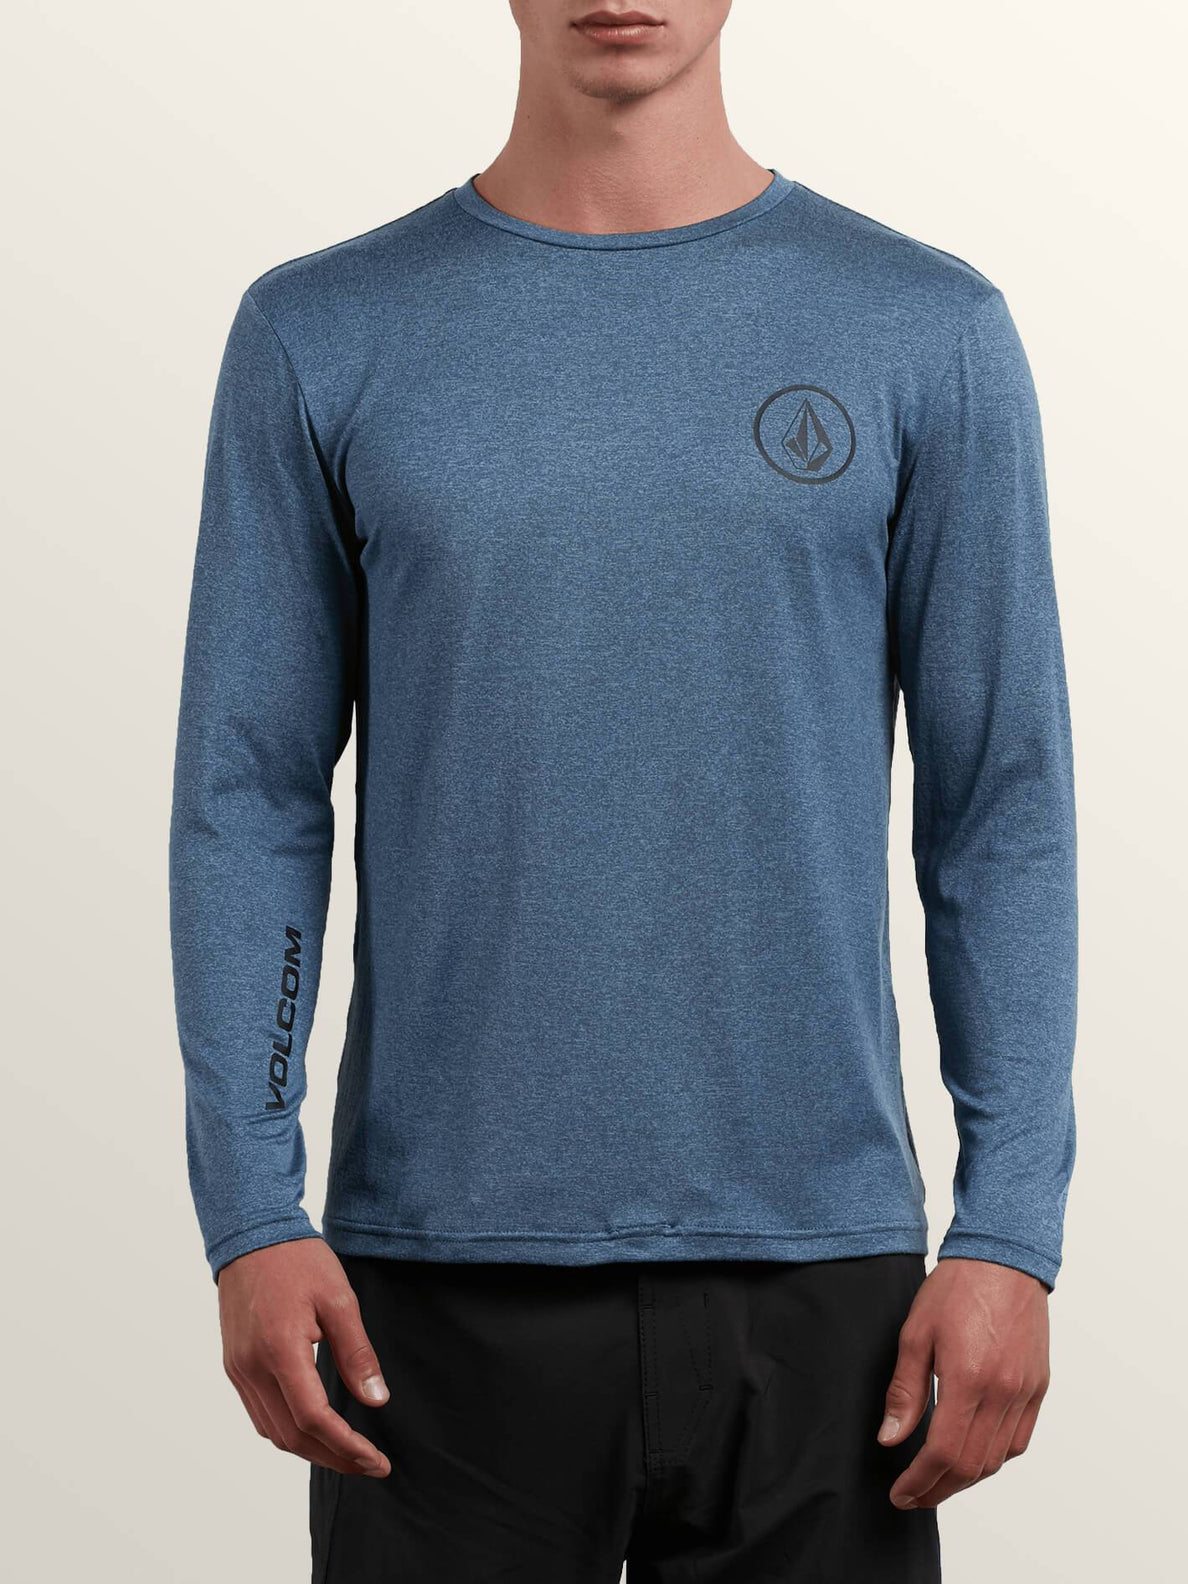 Lido Heather Long Sleeve Rashguard In Deep Blue, Front View